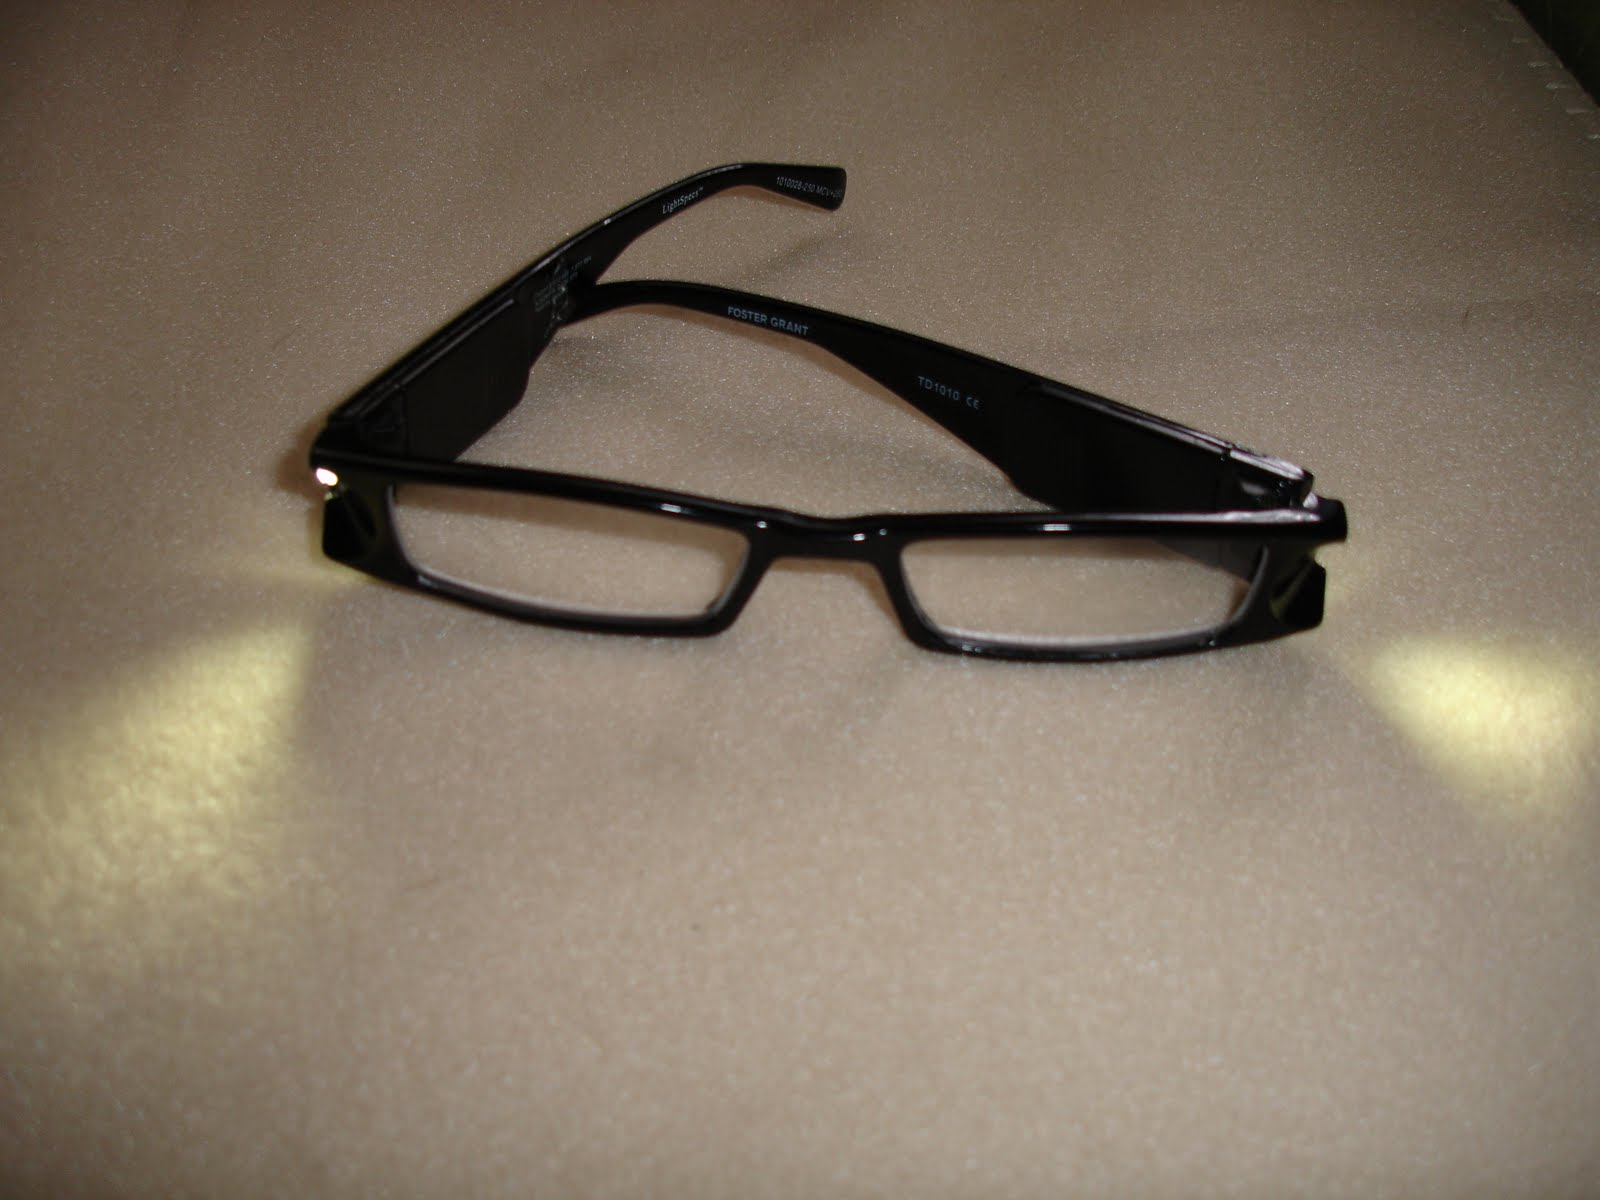 magnifying eyeglasses with light pair of magnifying glasses. Black Bedroom Furniture Sets. Home Design Ideas